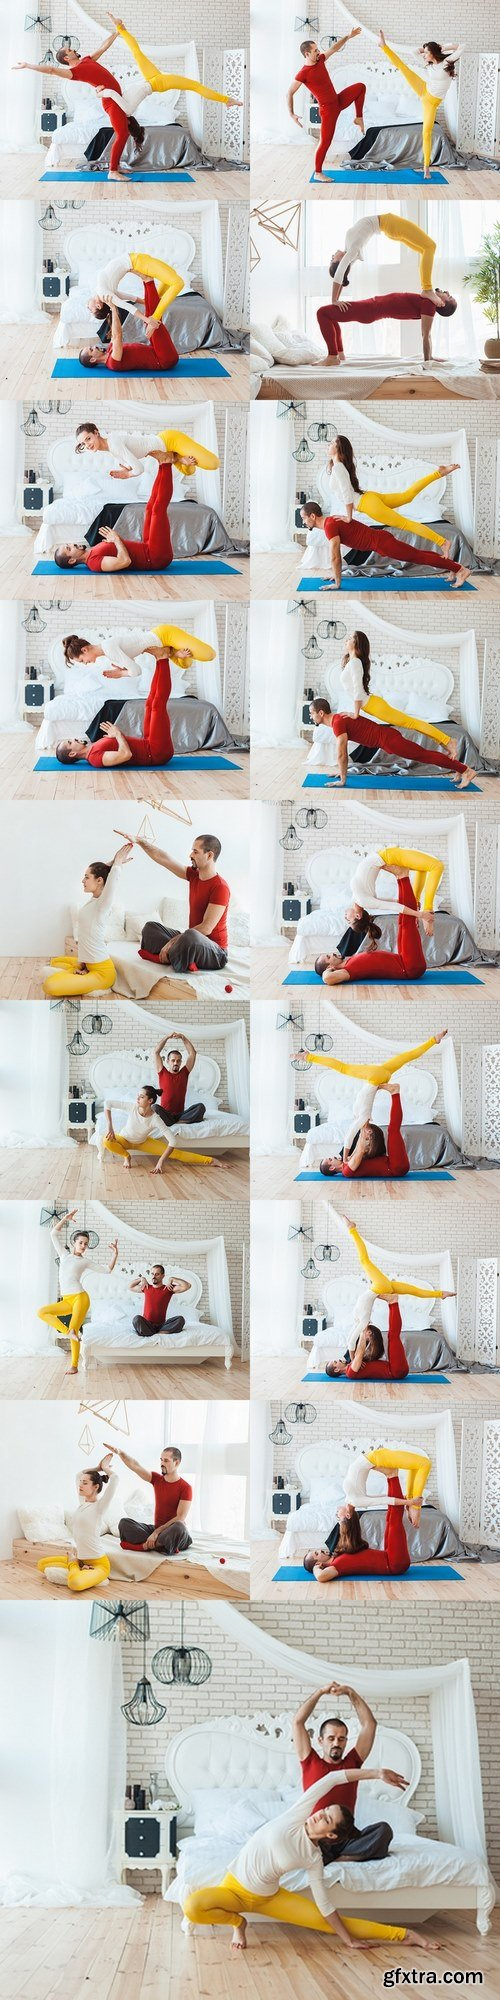 Man and woman practicing yoga, they trained at home